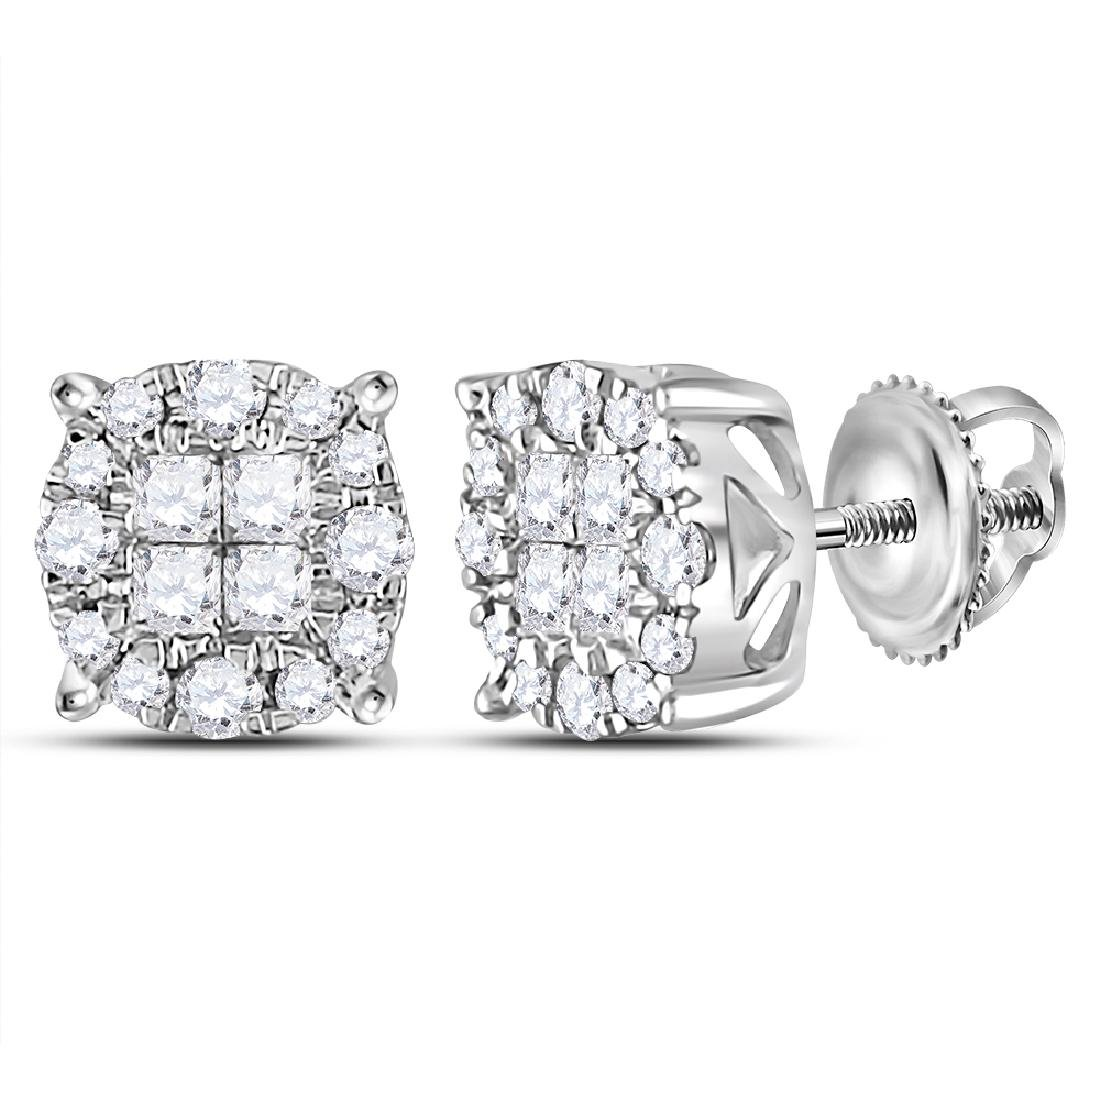 0.50 CTW Princess Diamond Soleil Cluster Earrings 14KT